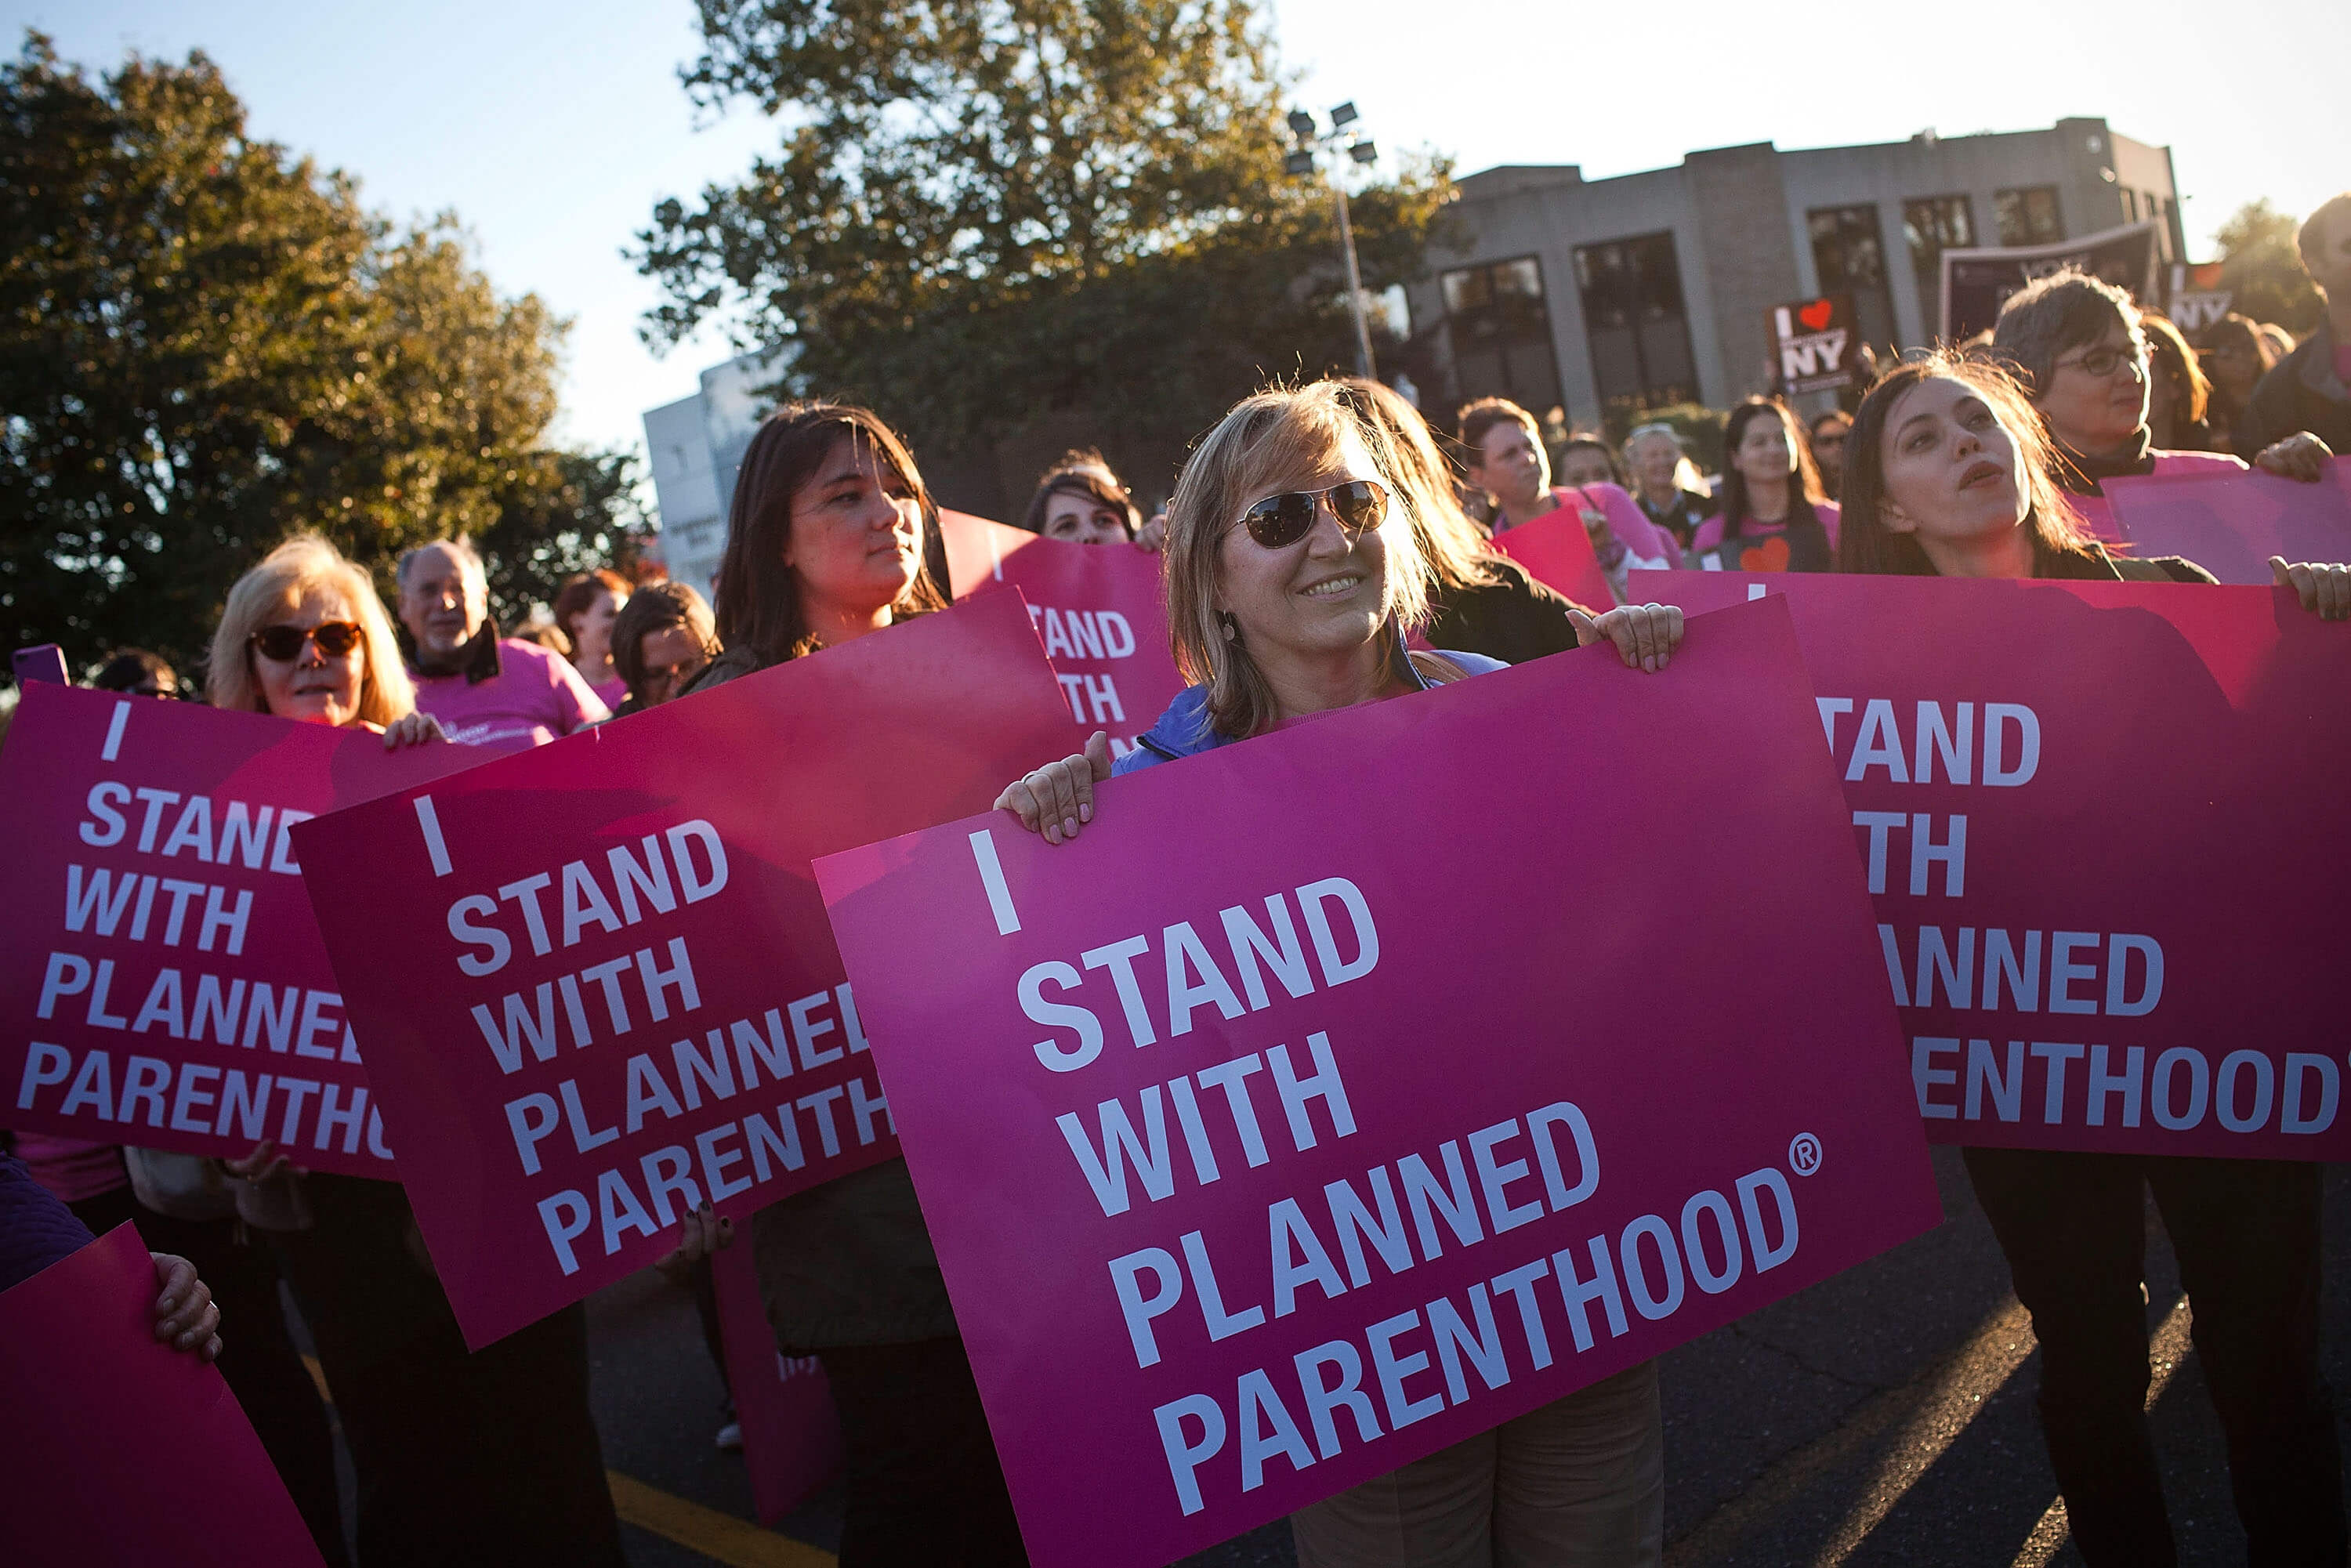 """A group of women holding """"I STAND WITH PLANNED PARENTHOOD"""" signs."""